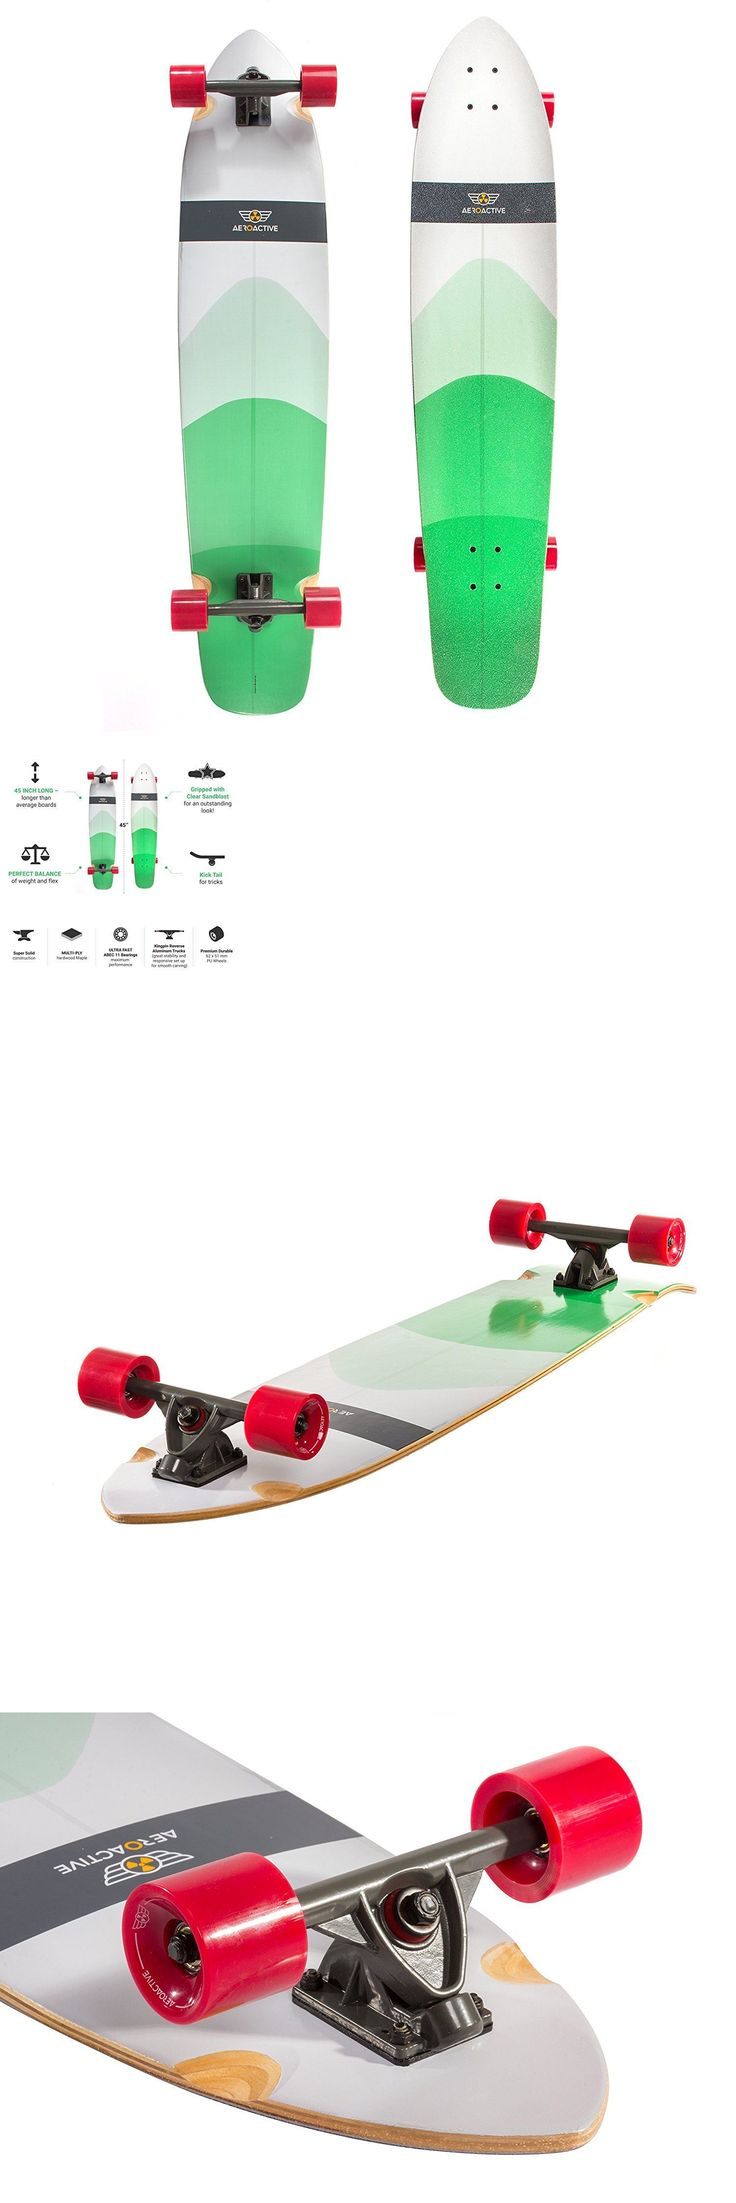 Longboards-Complete 165942: Aeroactive Cruiser Pro Skateboard - 45 Inch Green - Hardwood Maple - New In Box! -> BUY IT NOW ONLY: $39.99 on eBay!